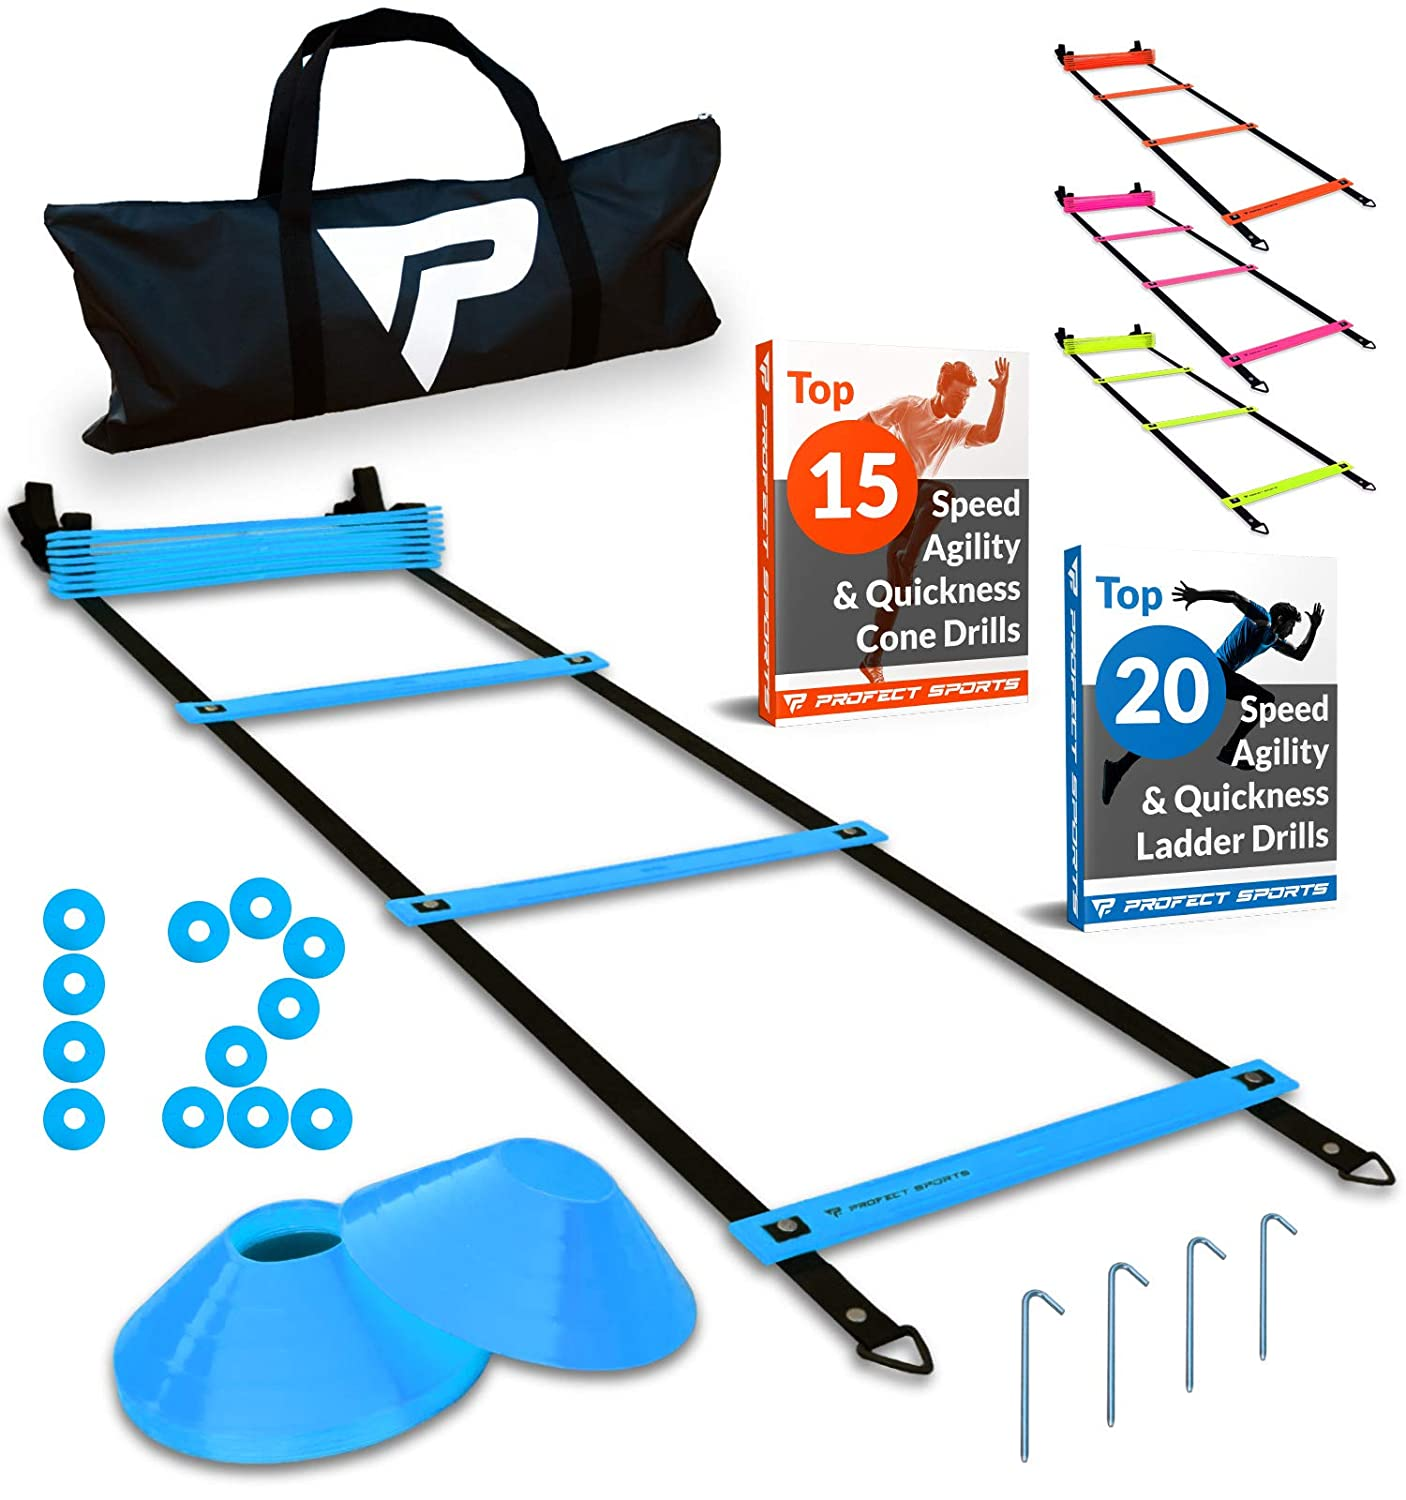 Pro Agility Ladder and Cones - 15 ft Fixed-Rung Speed Ladder with 12 Disc  Cones for Soccer, Football, Sports Training - Includes Heavy Duty Carry  Bag,